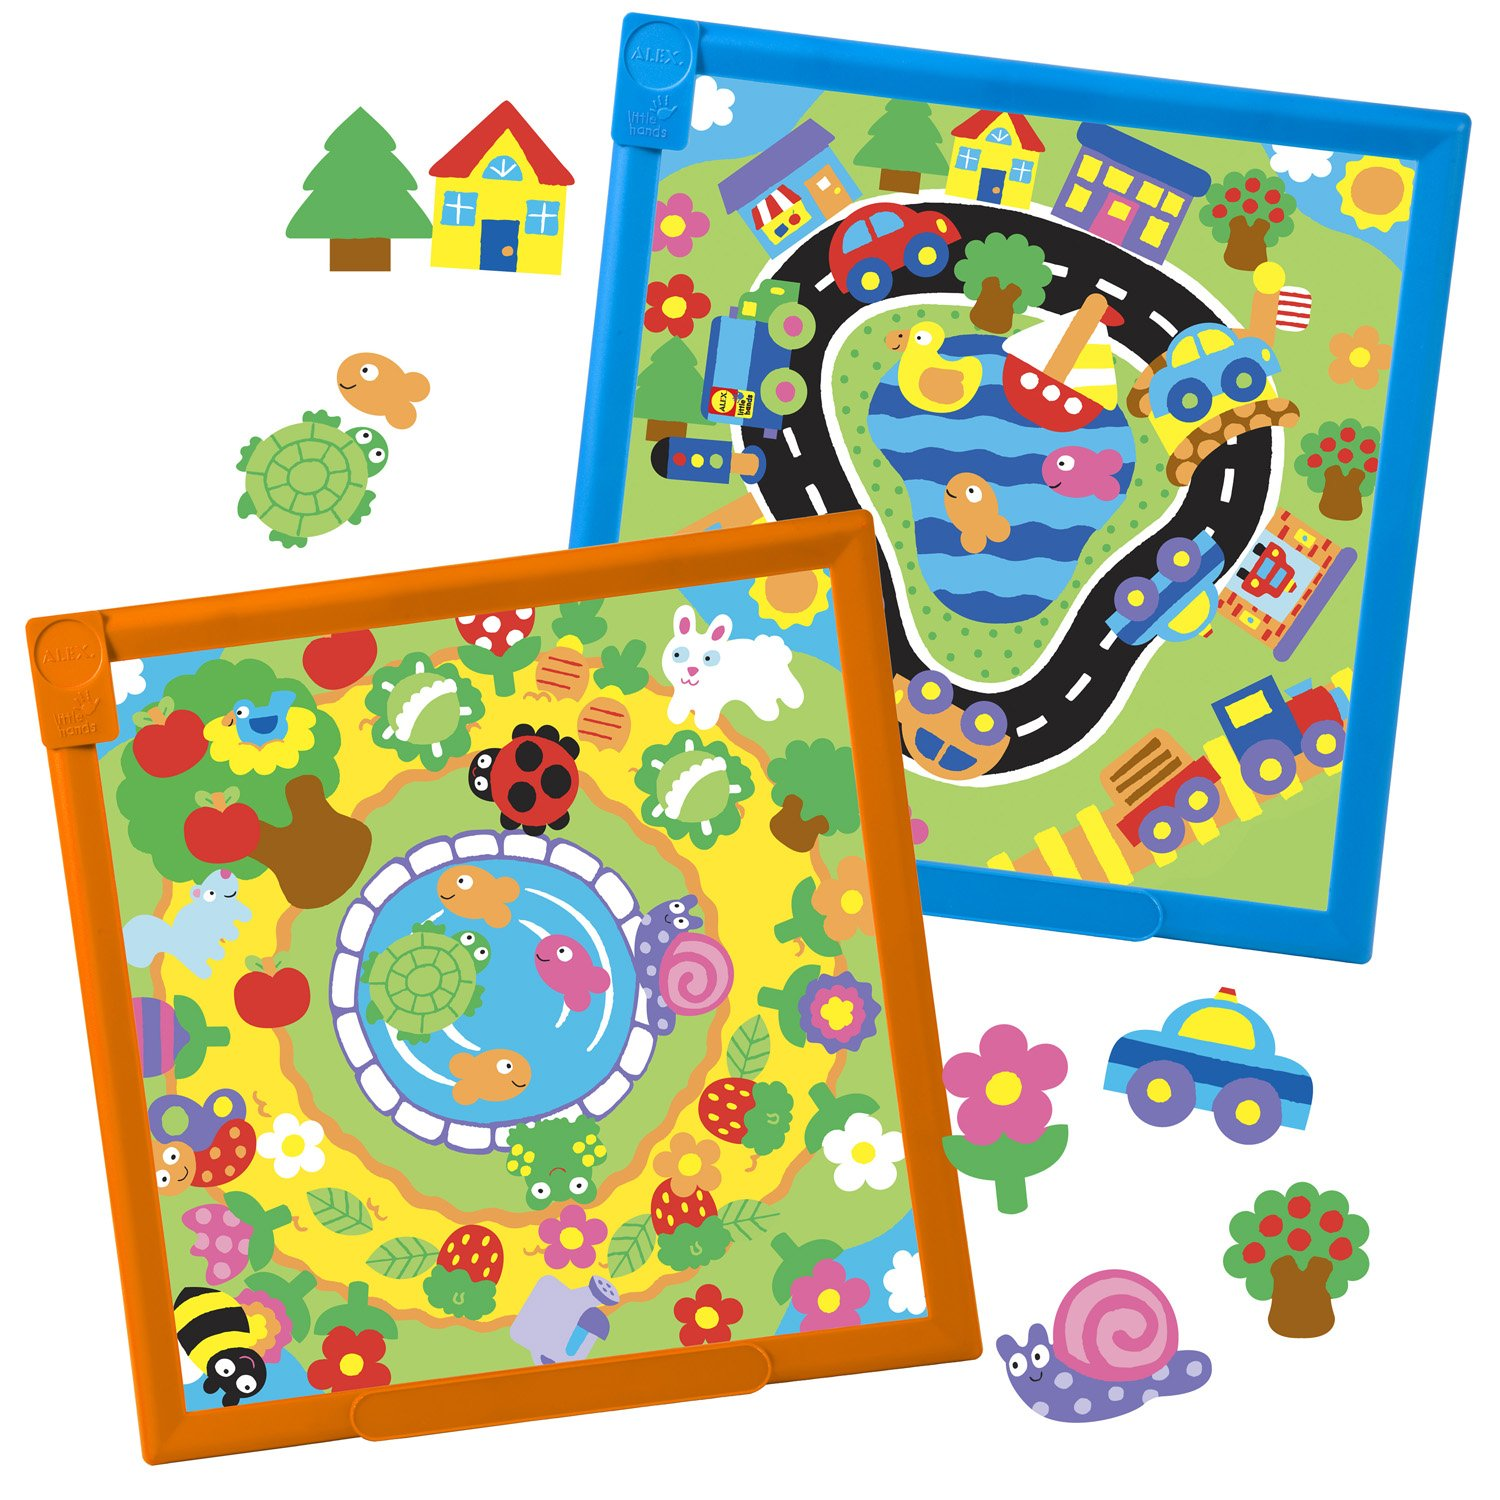 ALEX® Toys - Early Learning My Sticker Art -Little Hands 524W